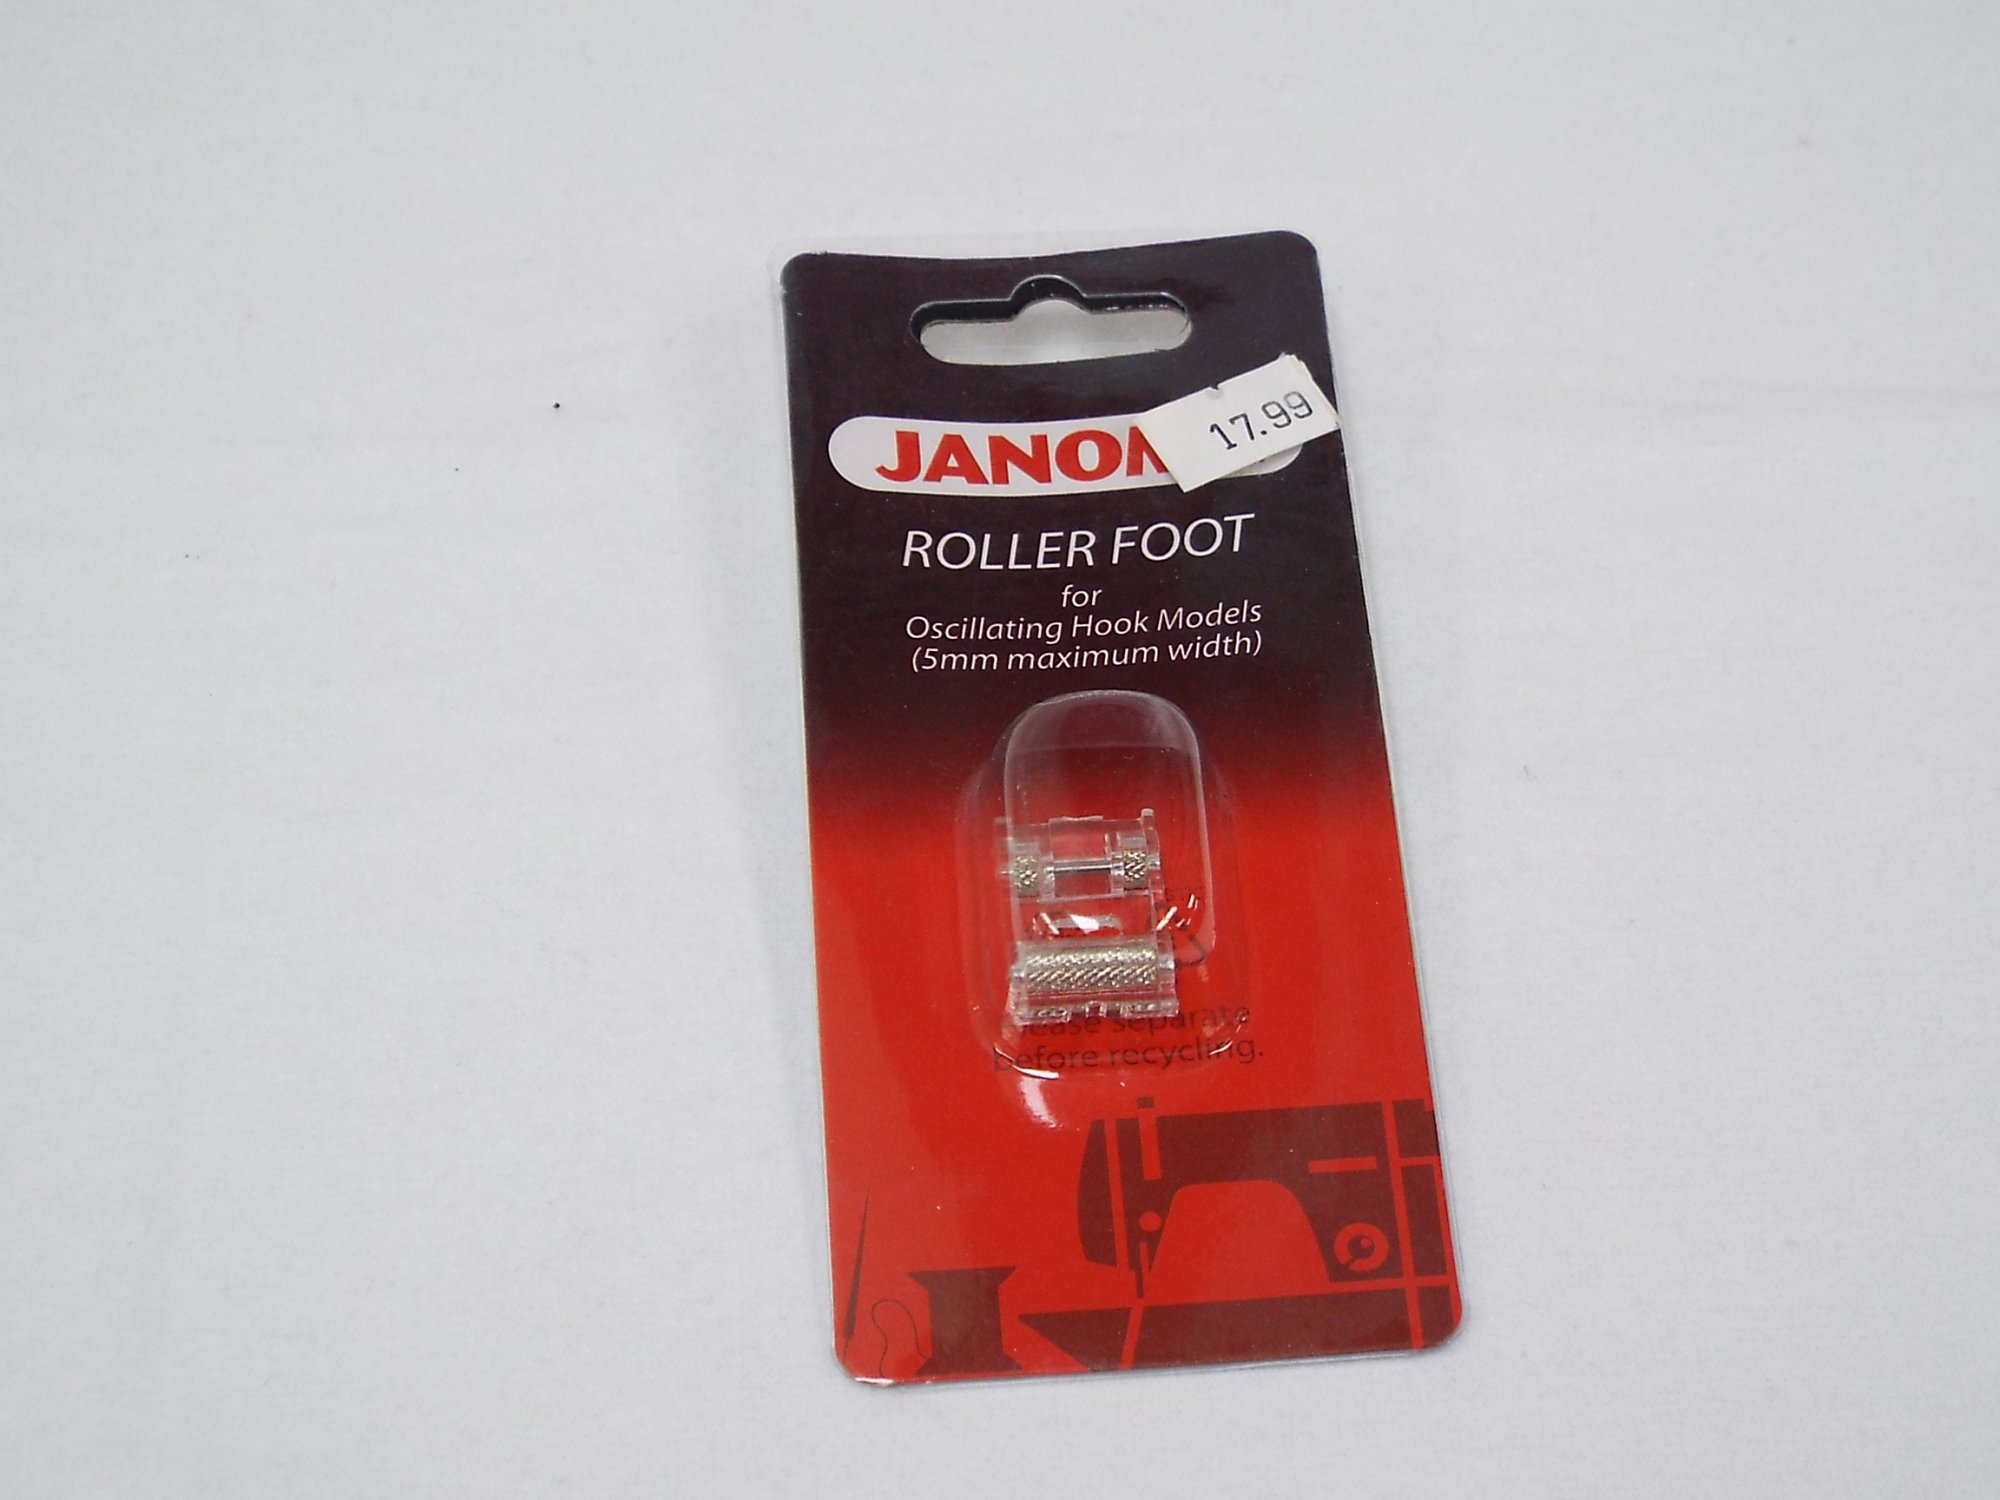 Janome 5 mm Roller Foot